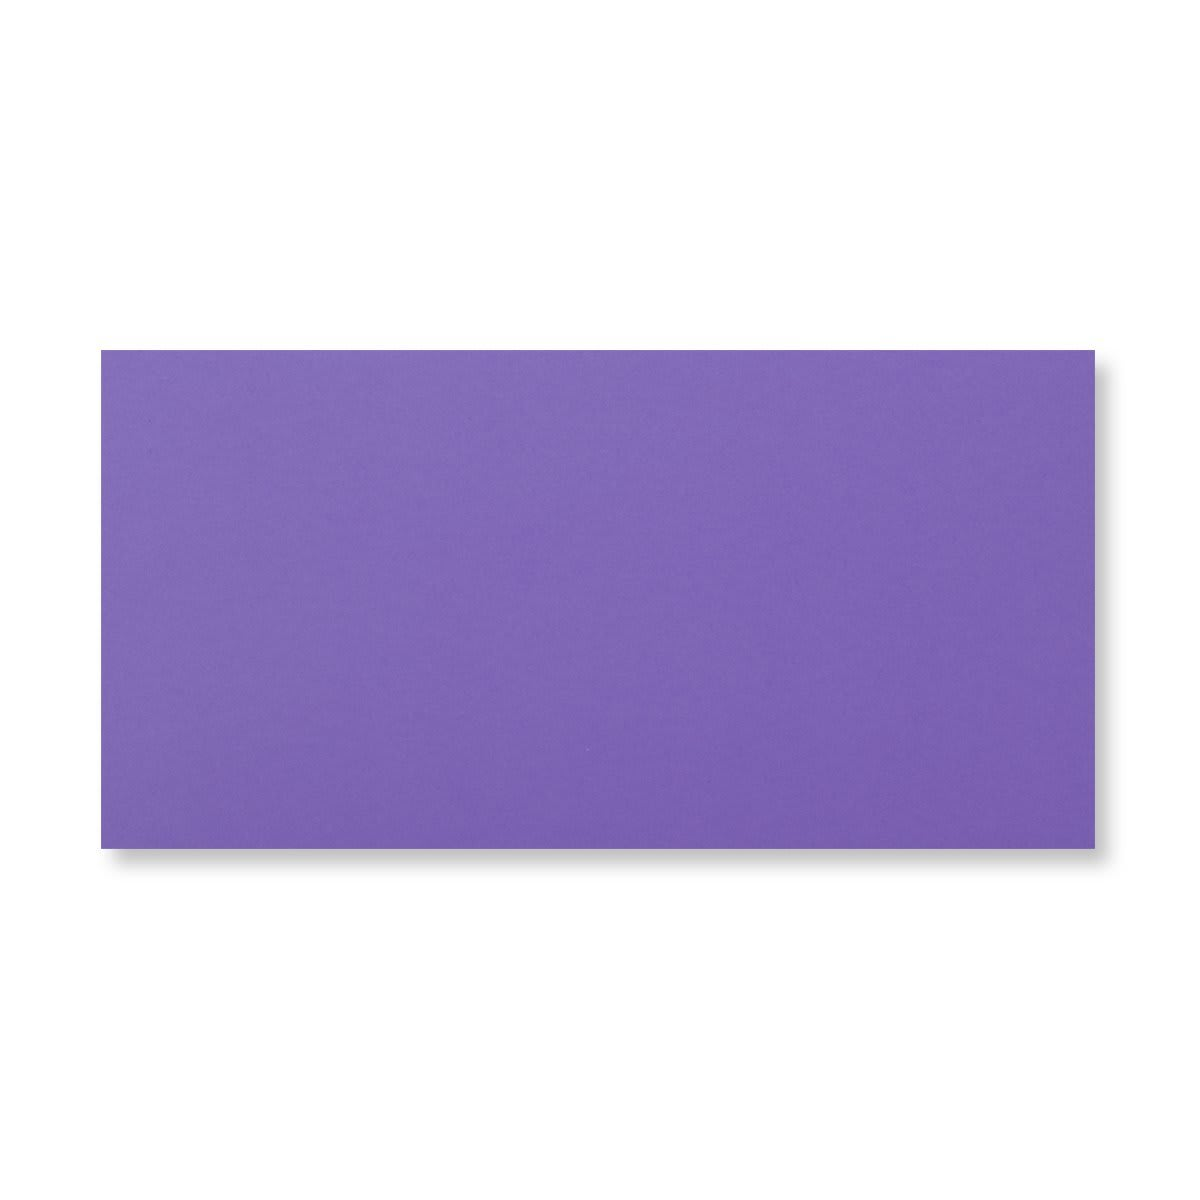 DL PURPLE PEEL AND SEAL ENVELOPES